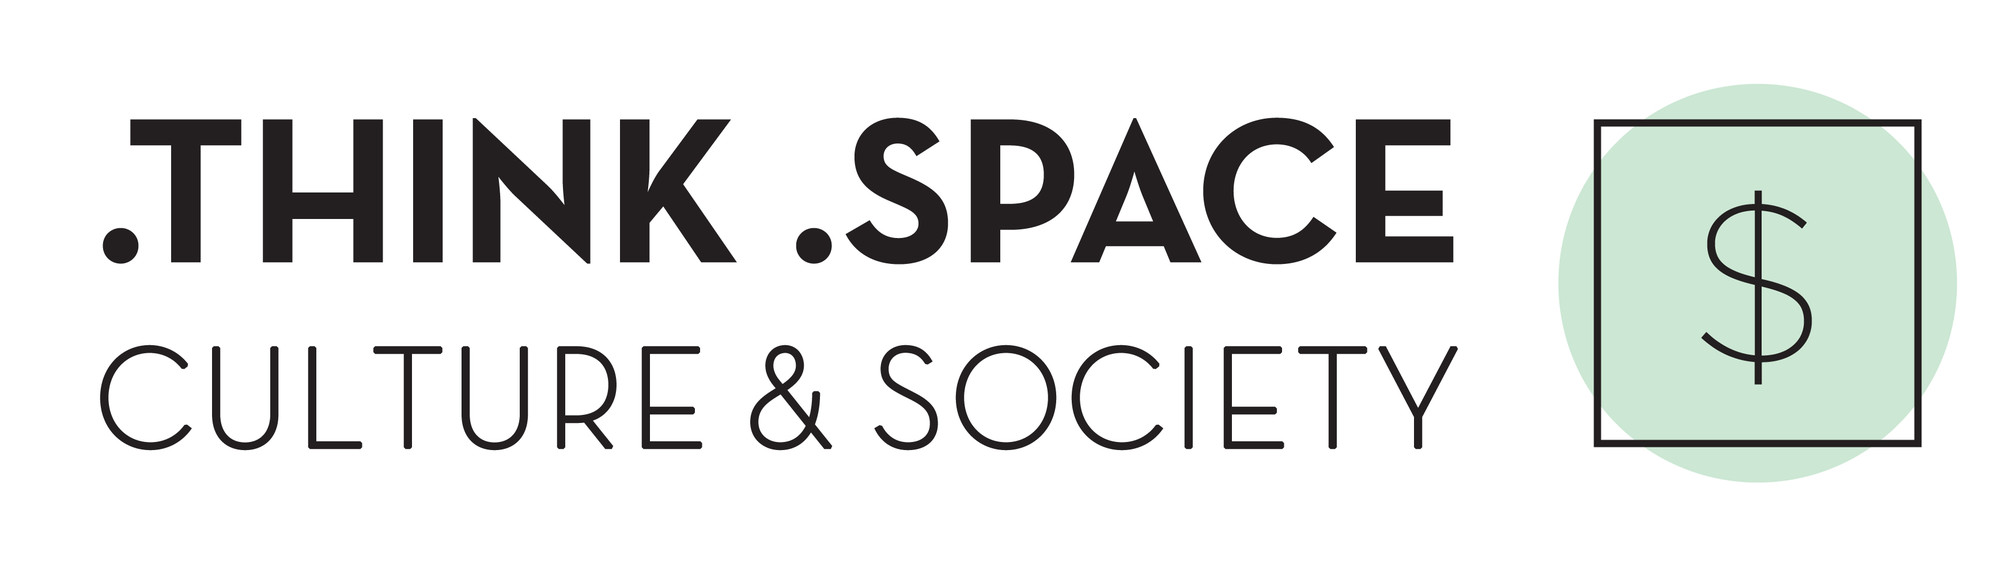 Think Space Launches Latest Competition: Culture & Society